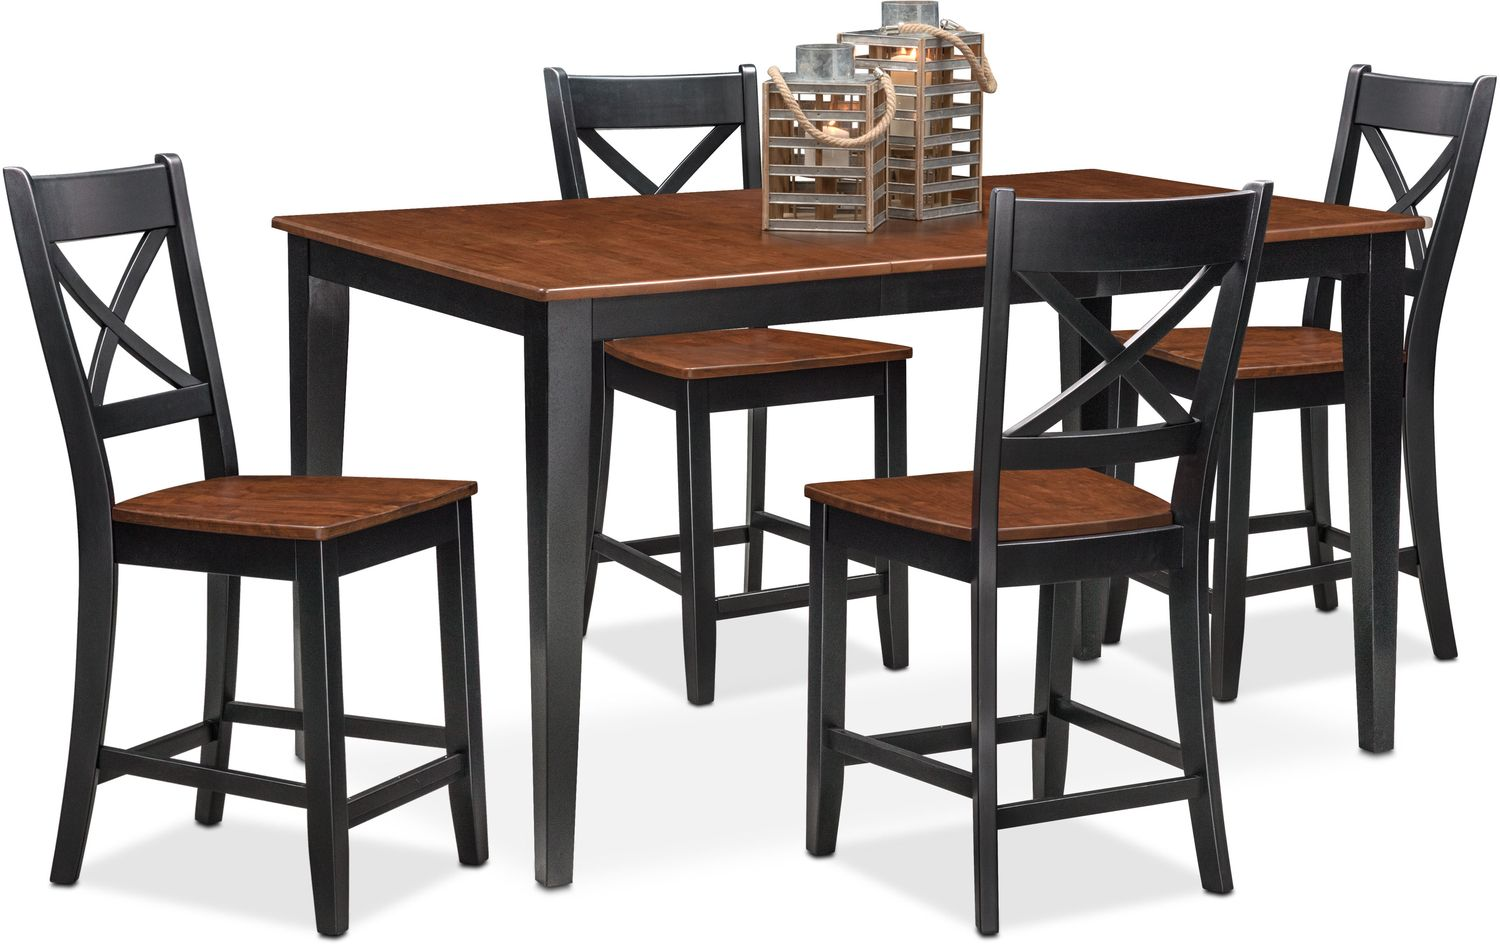 Nantucket Counter-Height Table and 4 X-Back Side Chairs - Cherry